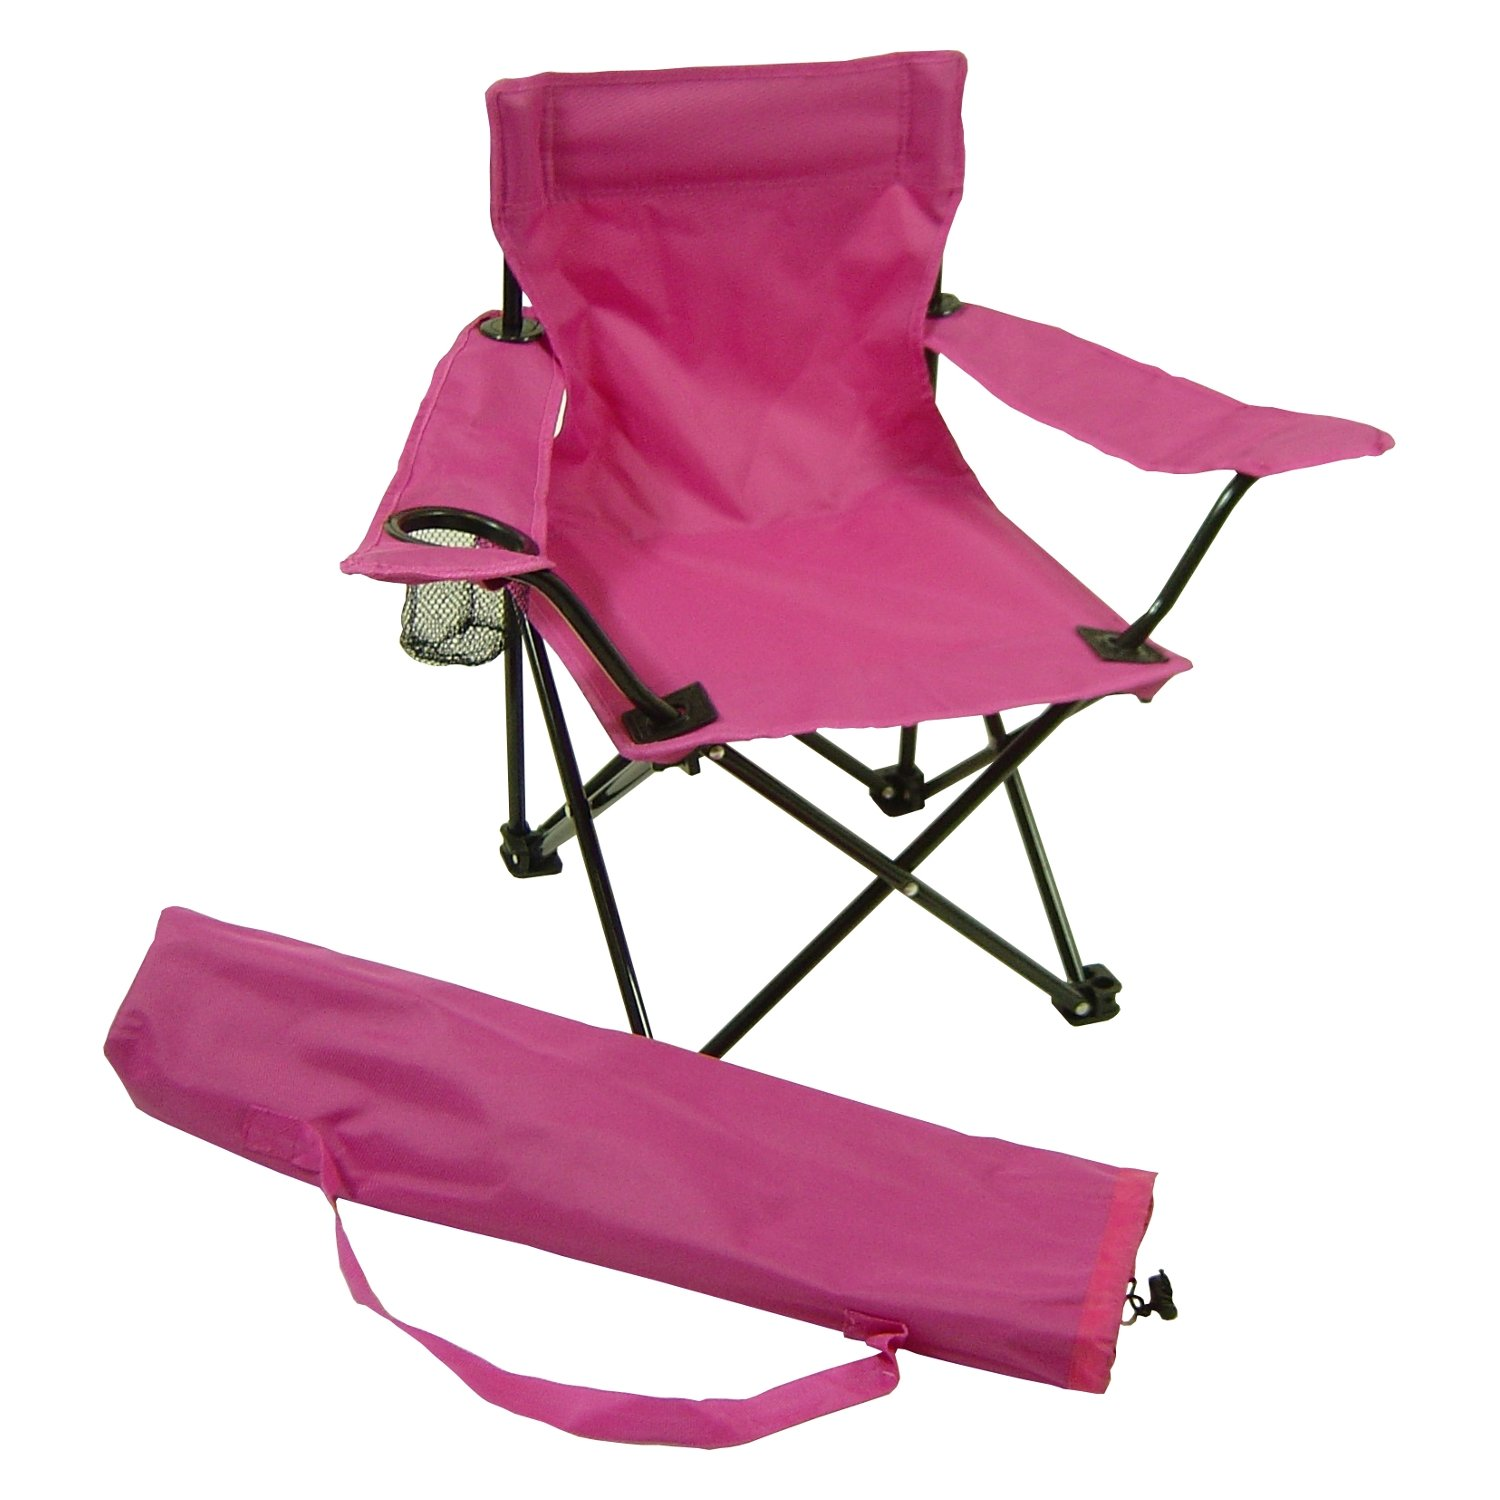 Redmon For Kids Folding Camp Chair Hot Pink – Amazon HOT Sales Pick